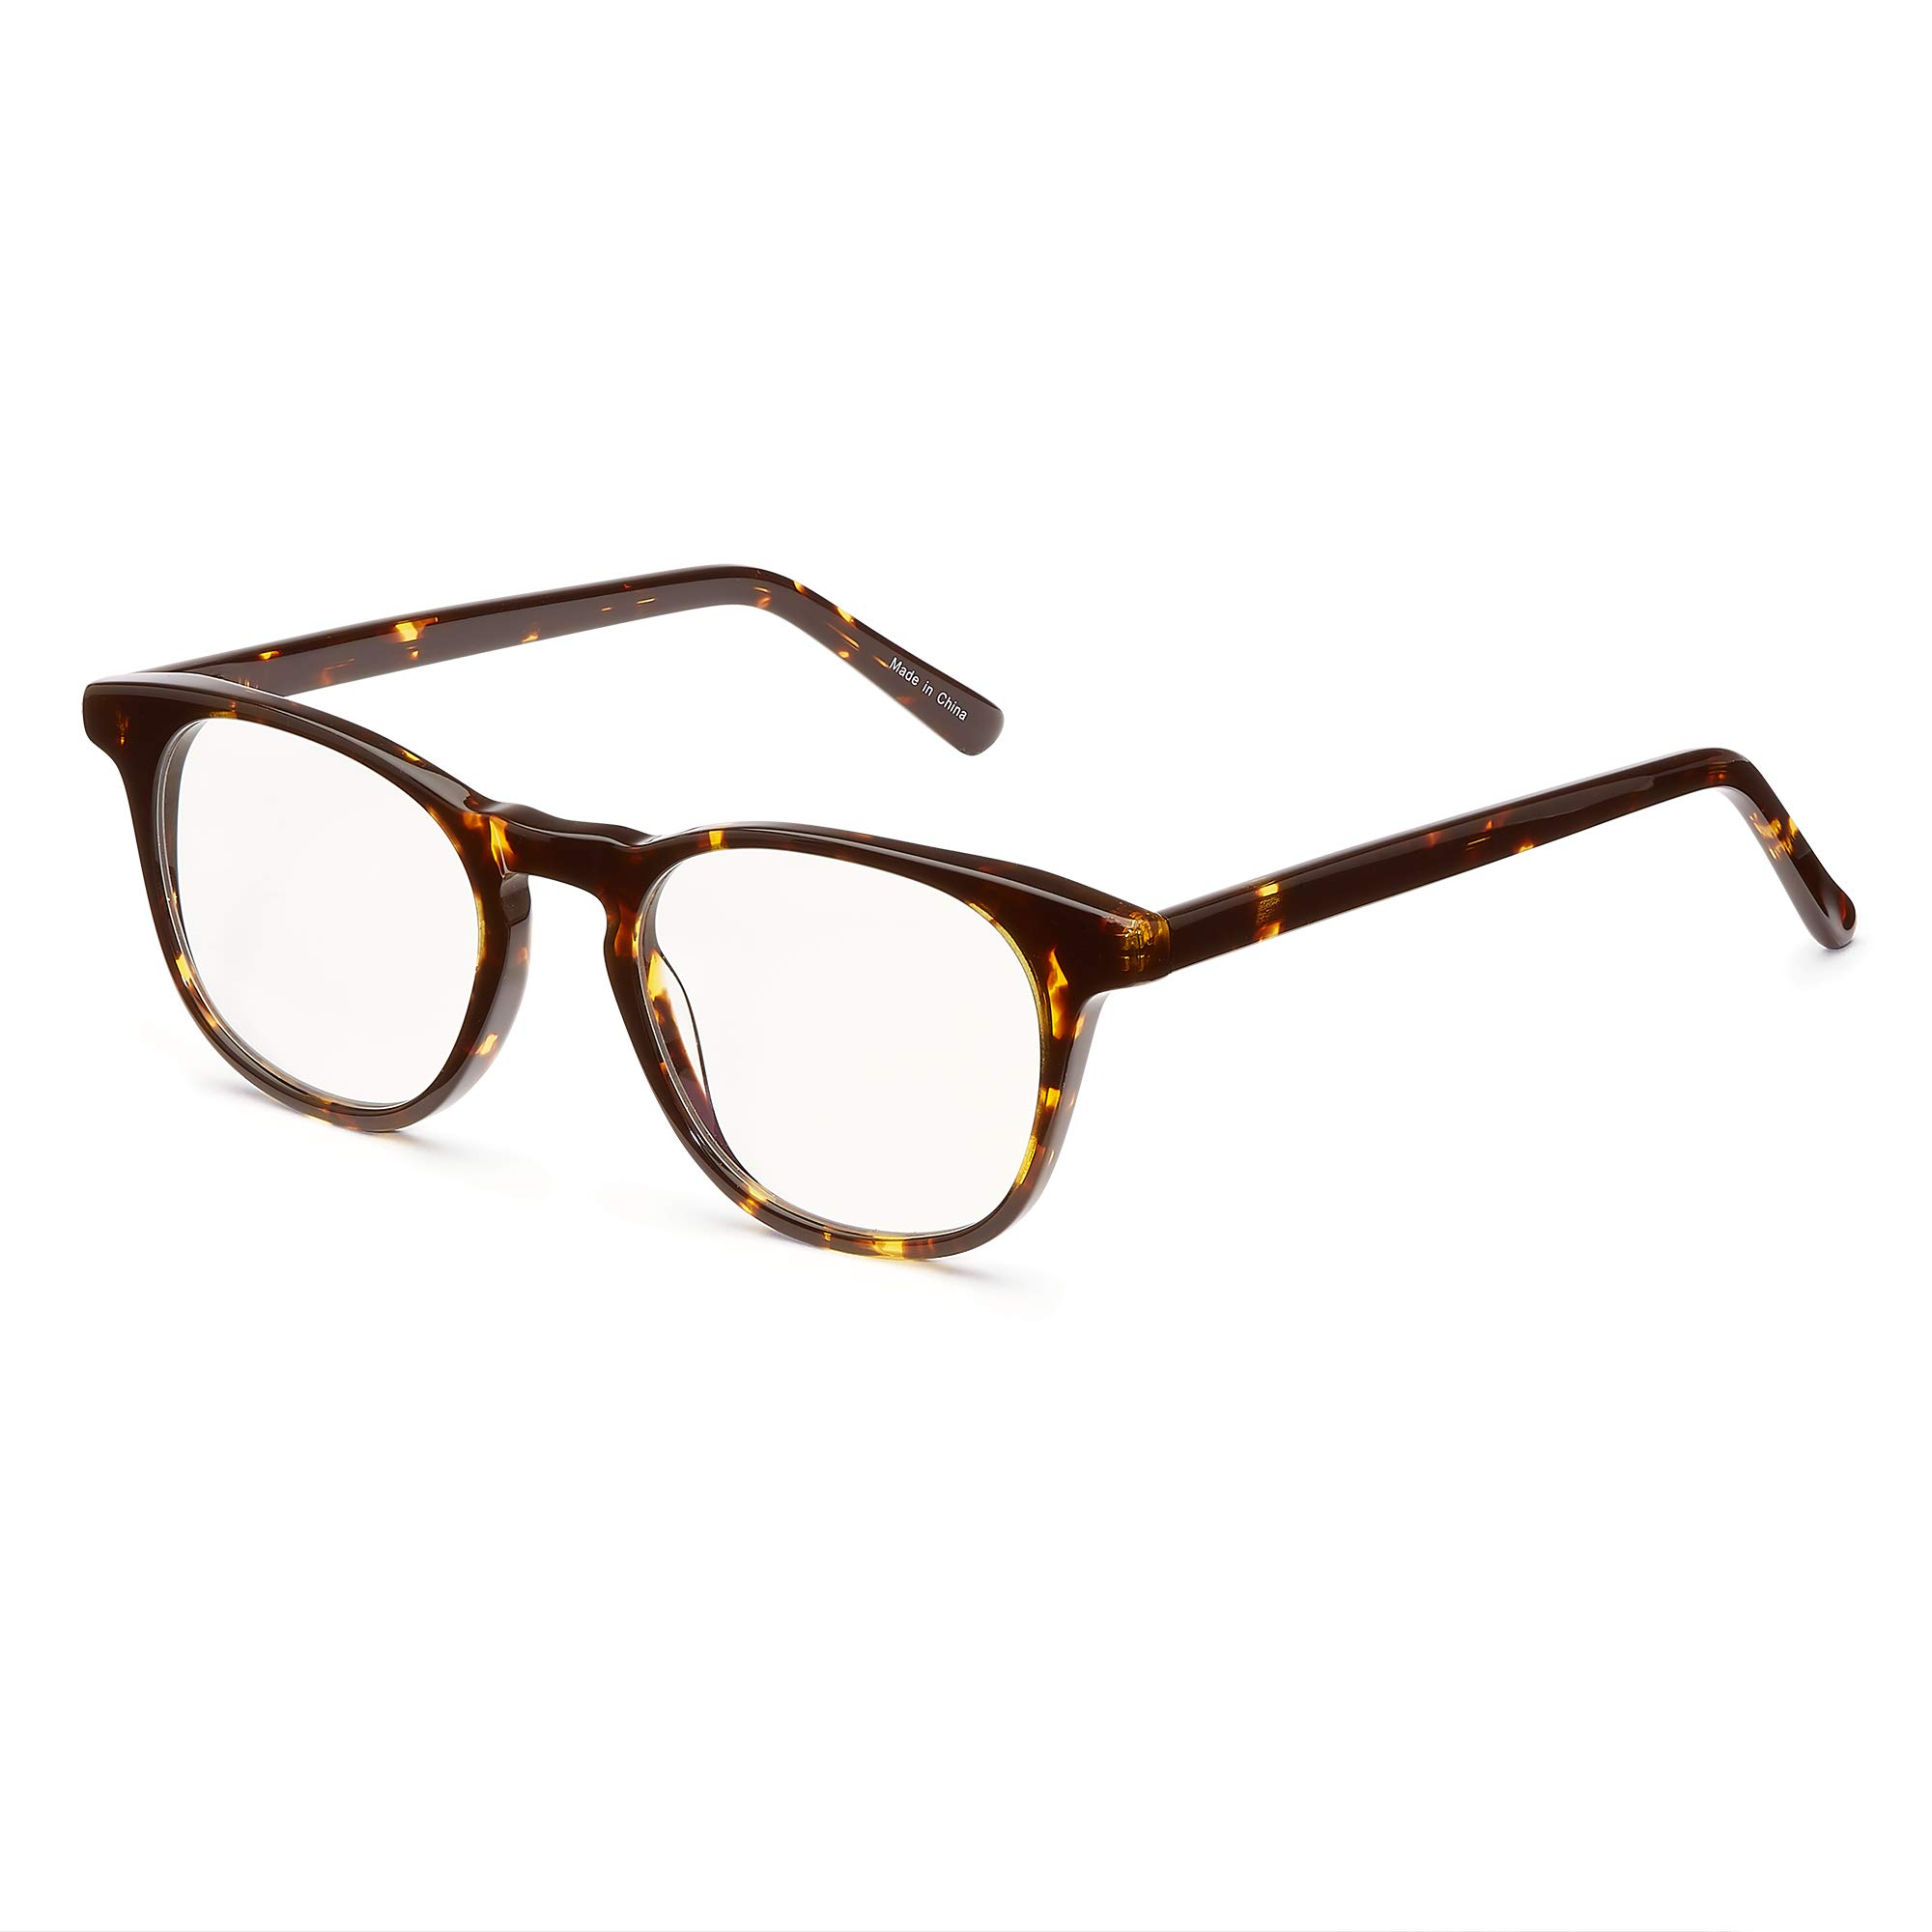 KPI Blue Light Blocking Glasses | Eye Protection, Anti Glare Anti-Radiation Computer Reading Glasses | Filter Harmful Light from Digital Devices | Acetate Frame, Clear Lens, No Yellow or Blue Tint